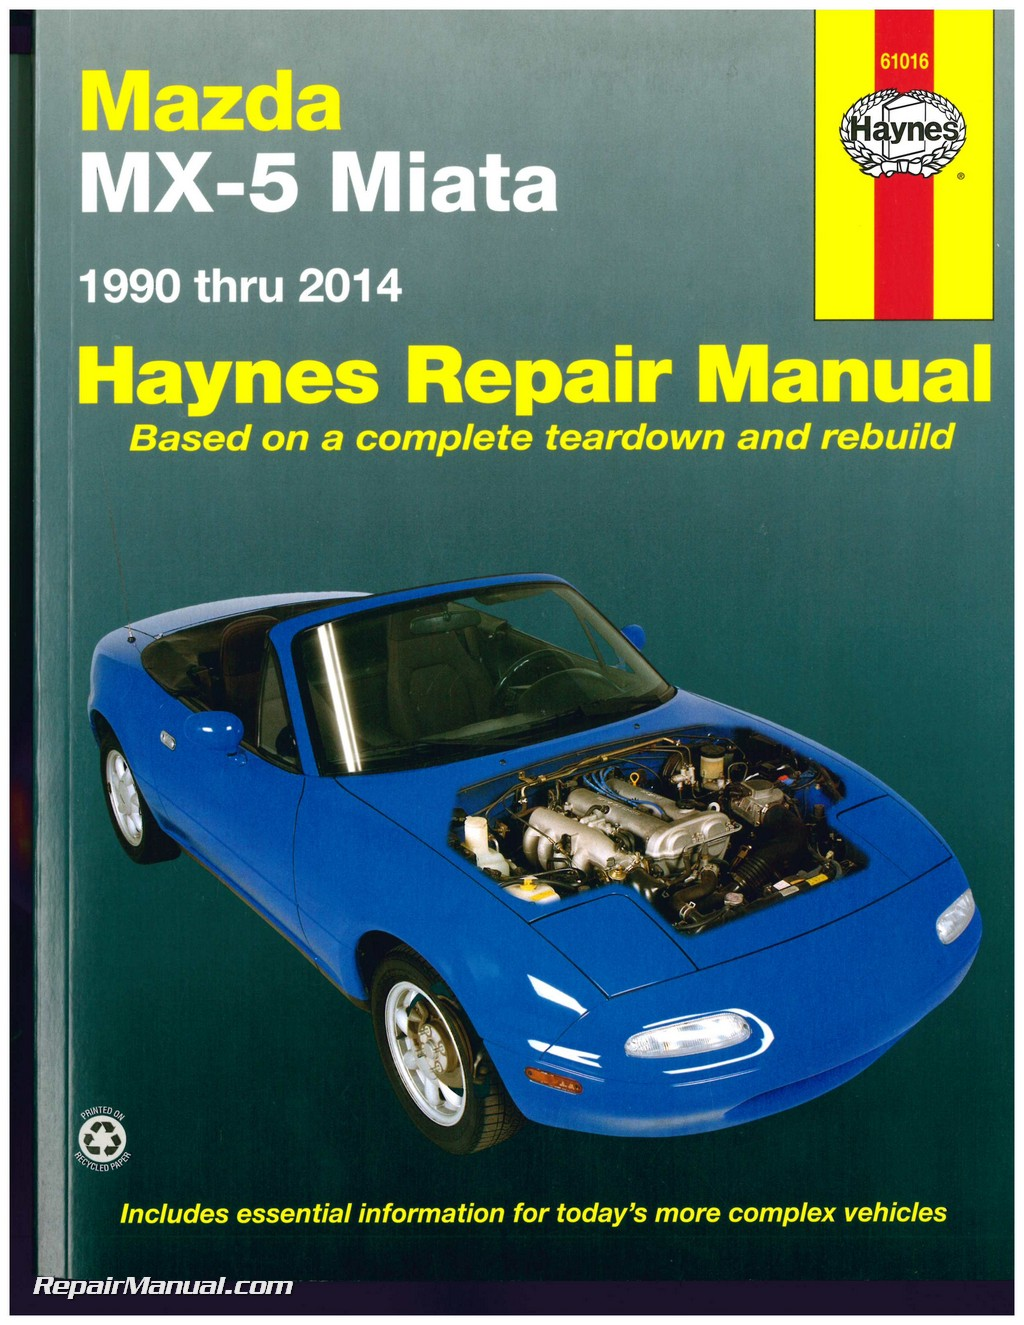 haynes mazda mx 5 miata 1990 2014 auto repair manual rh repairmanual com 1997 mazda miata owners manual pdf 1999 Mazda Miata